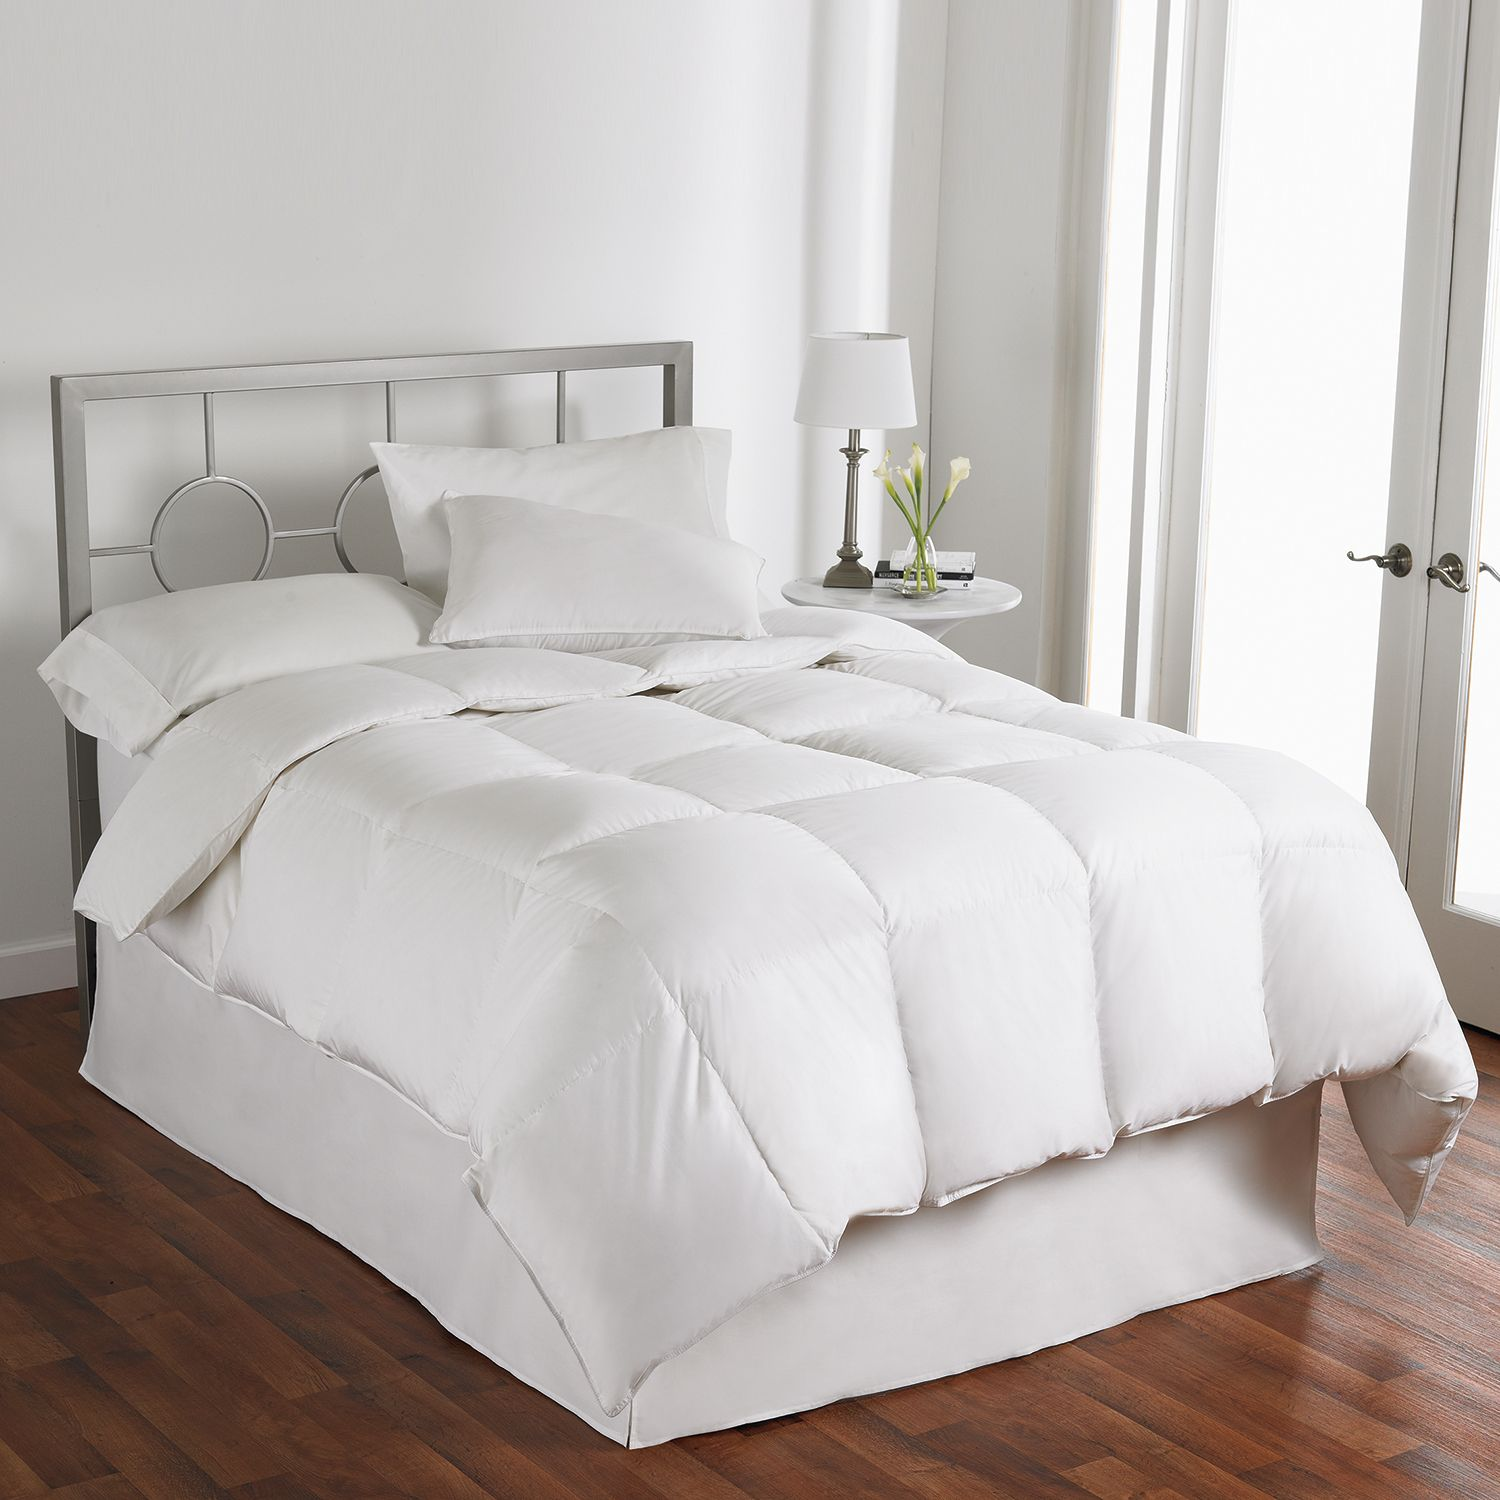 estate by croscill 400 thread count goose down comforter - Down Comforters